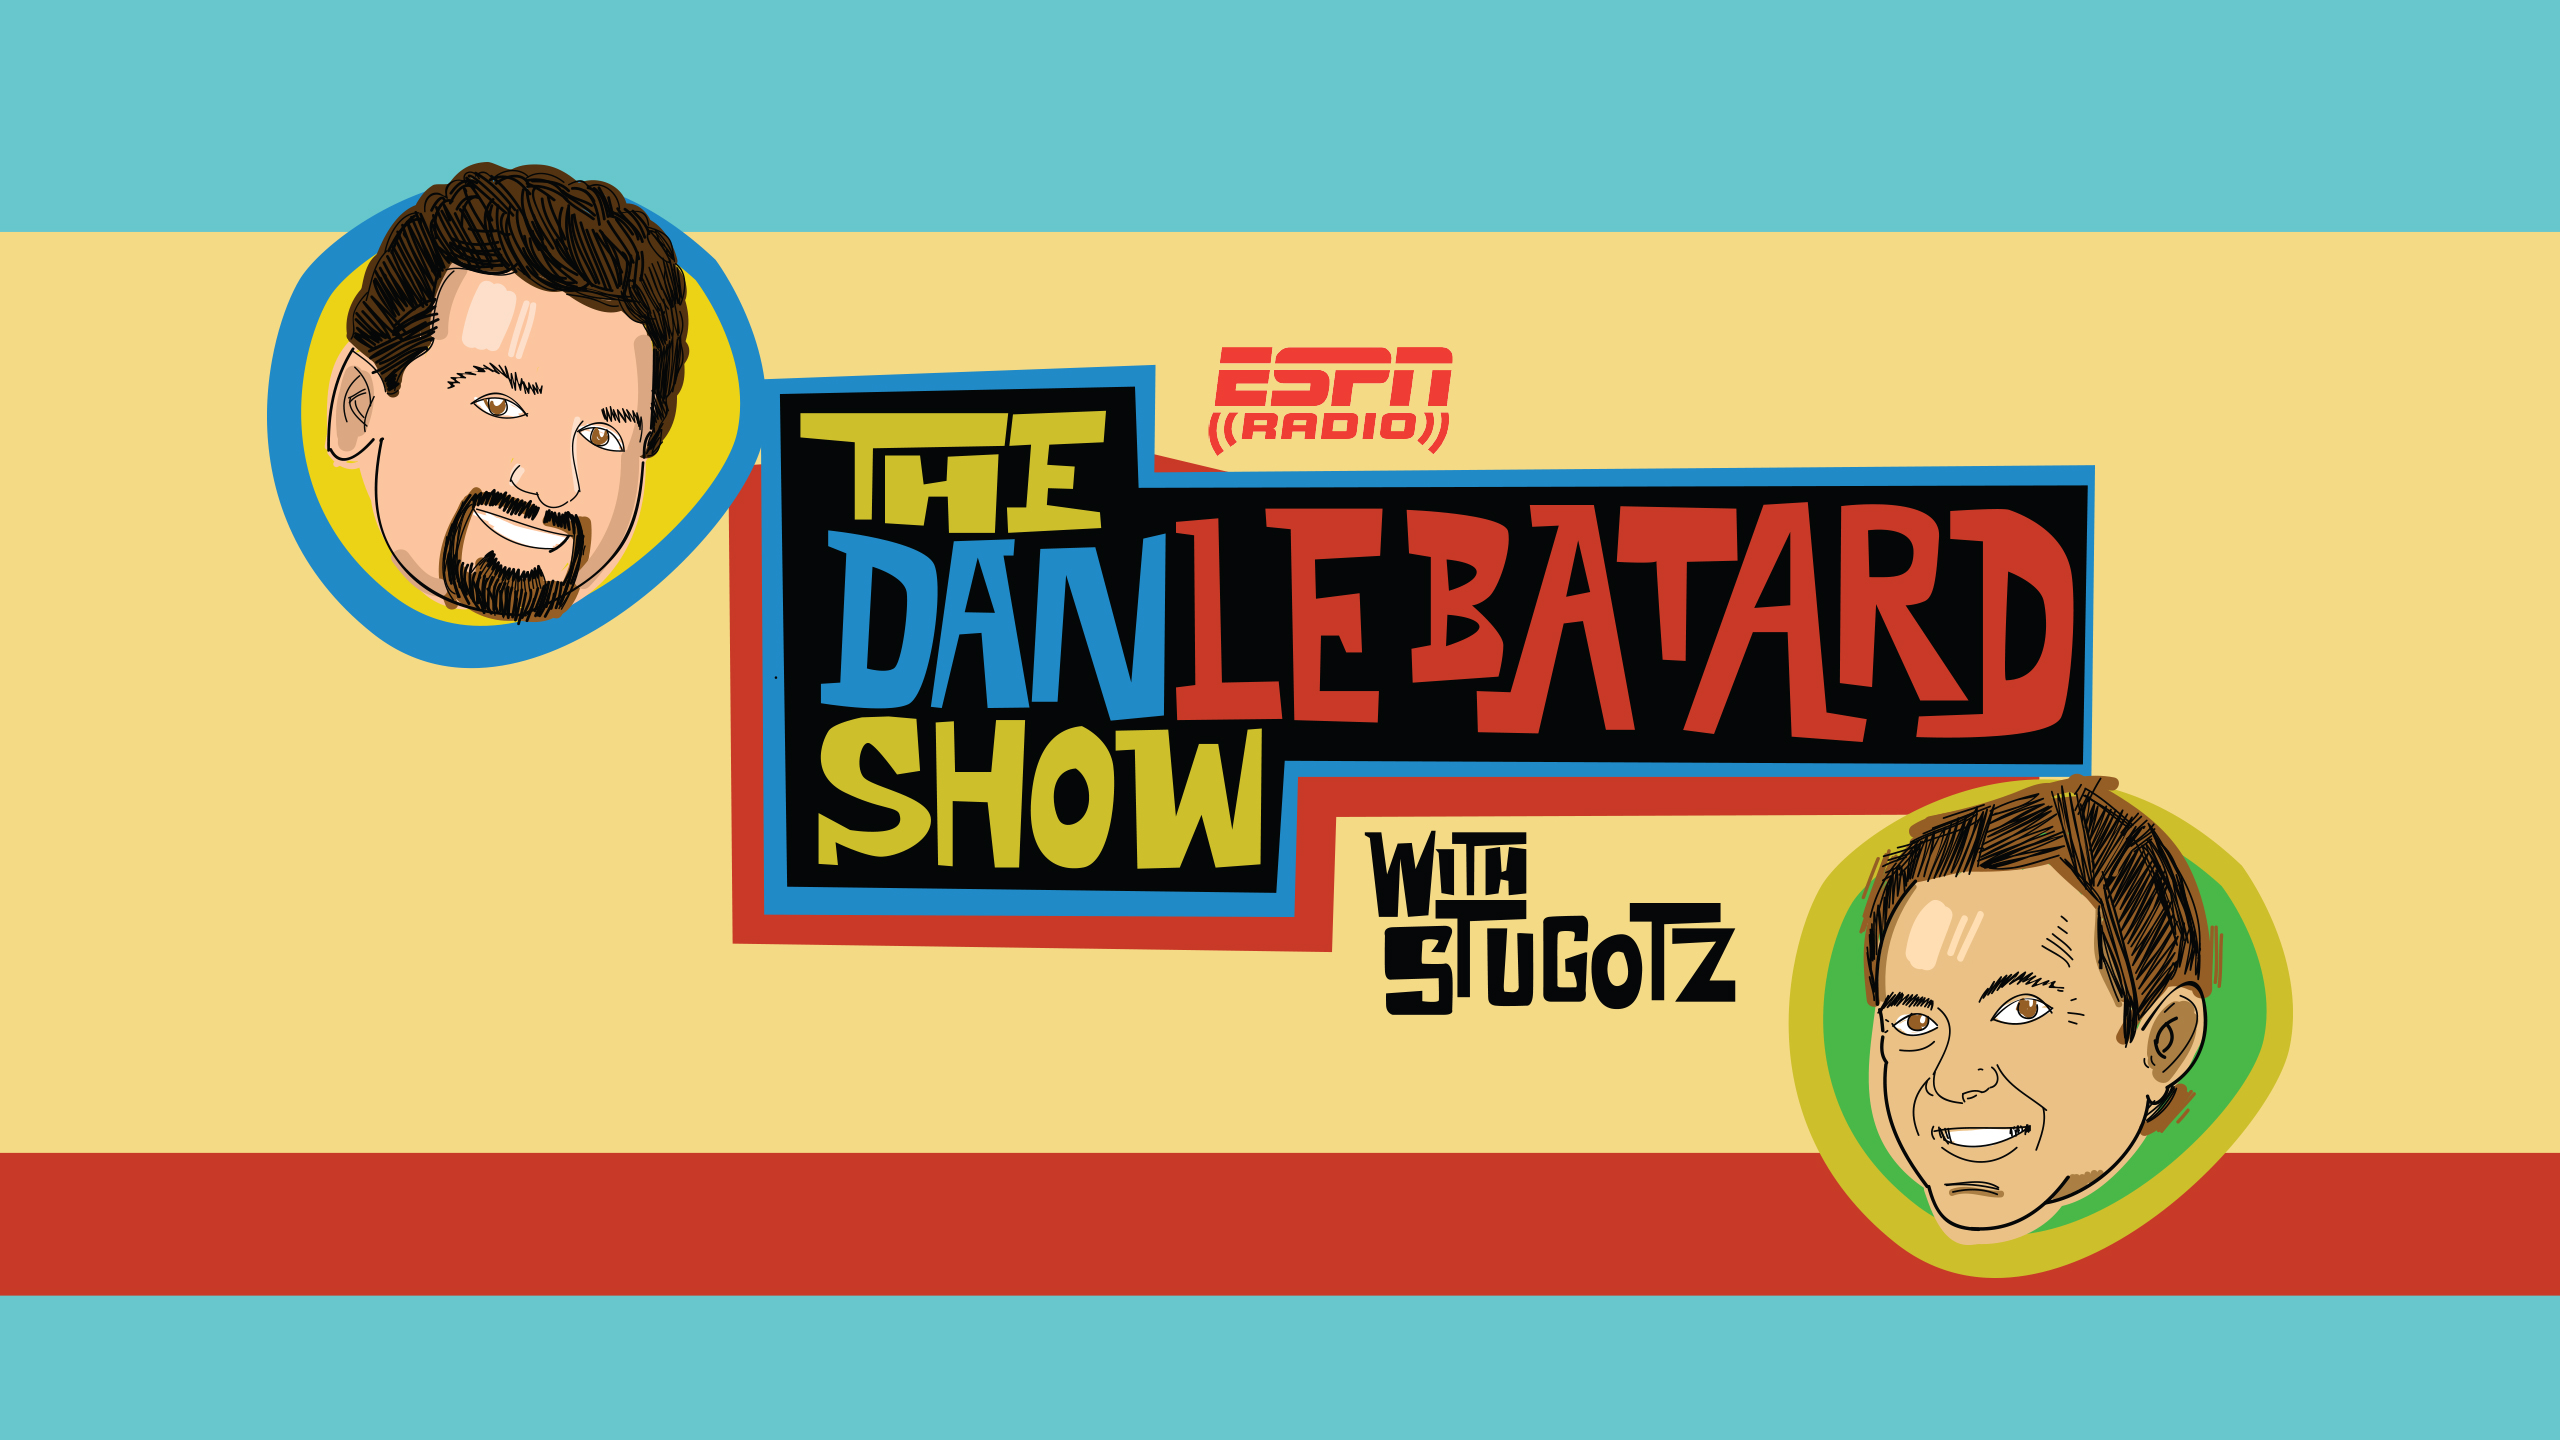 Wed, 3/20 - The Dan Le Batard Show with Stugotz Presented by Progressive